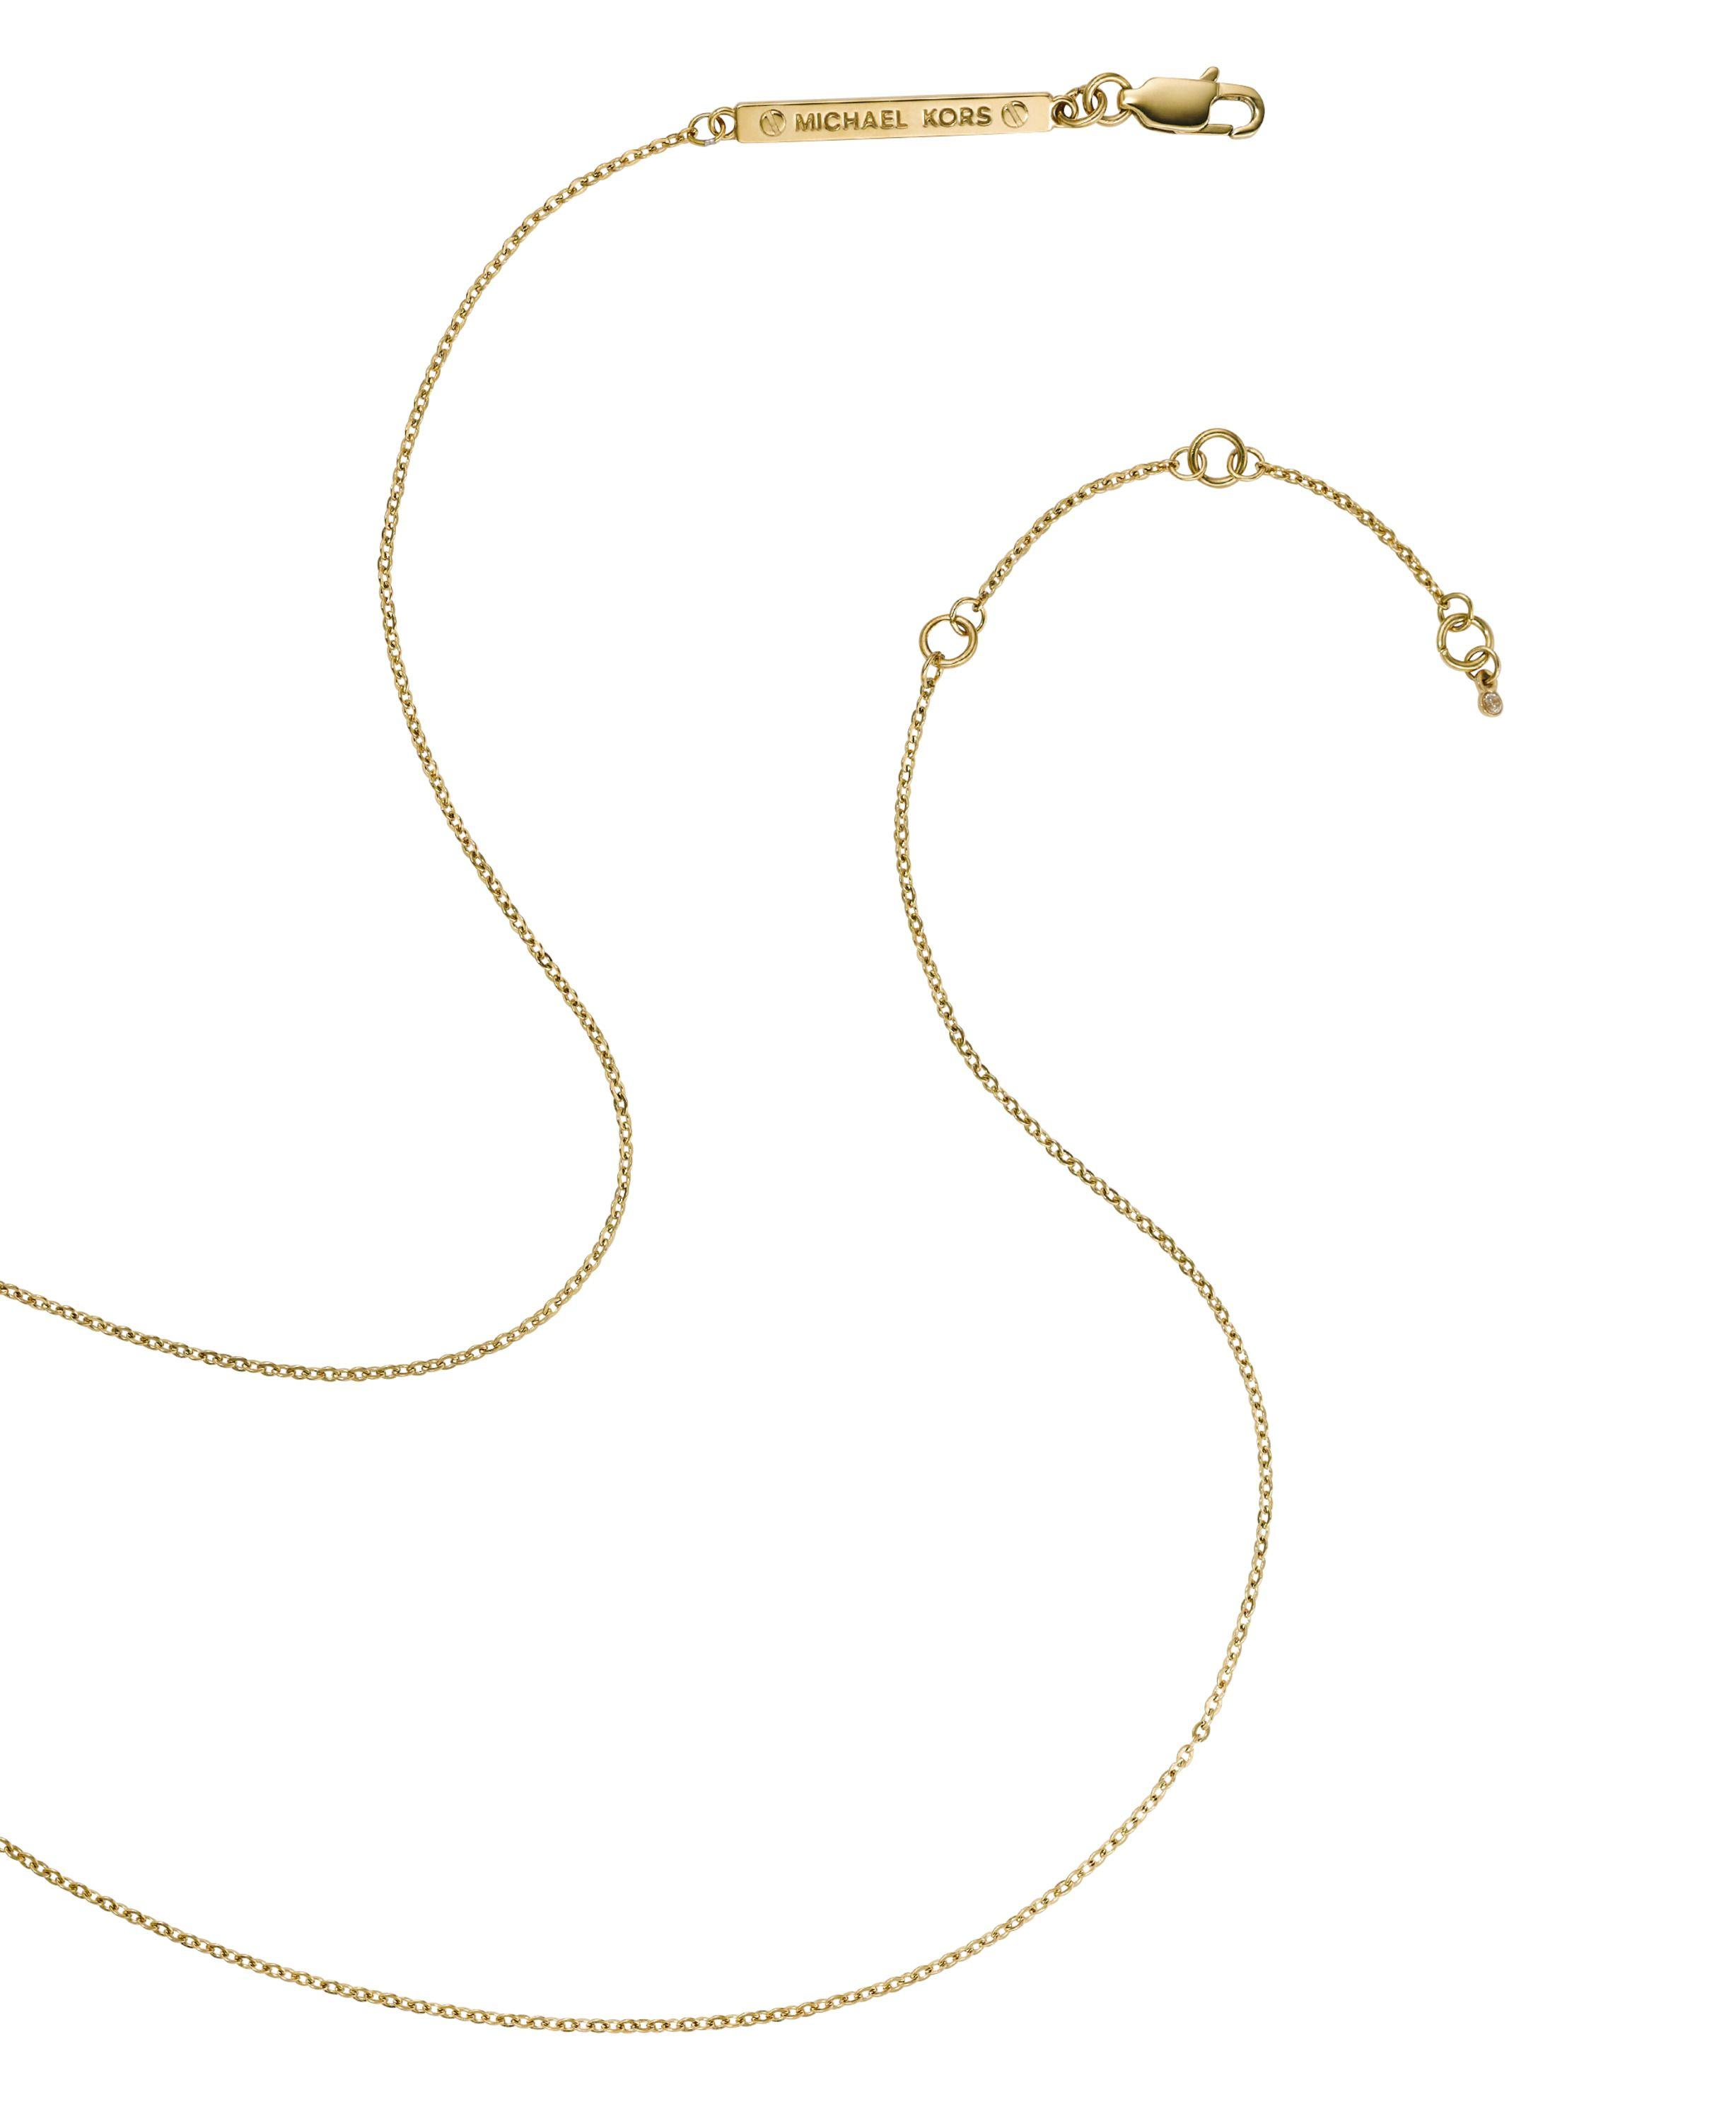 Michael Kors Mkj2654710 Ladies Necklace in Metallic